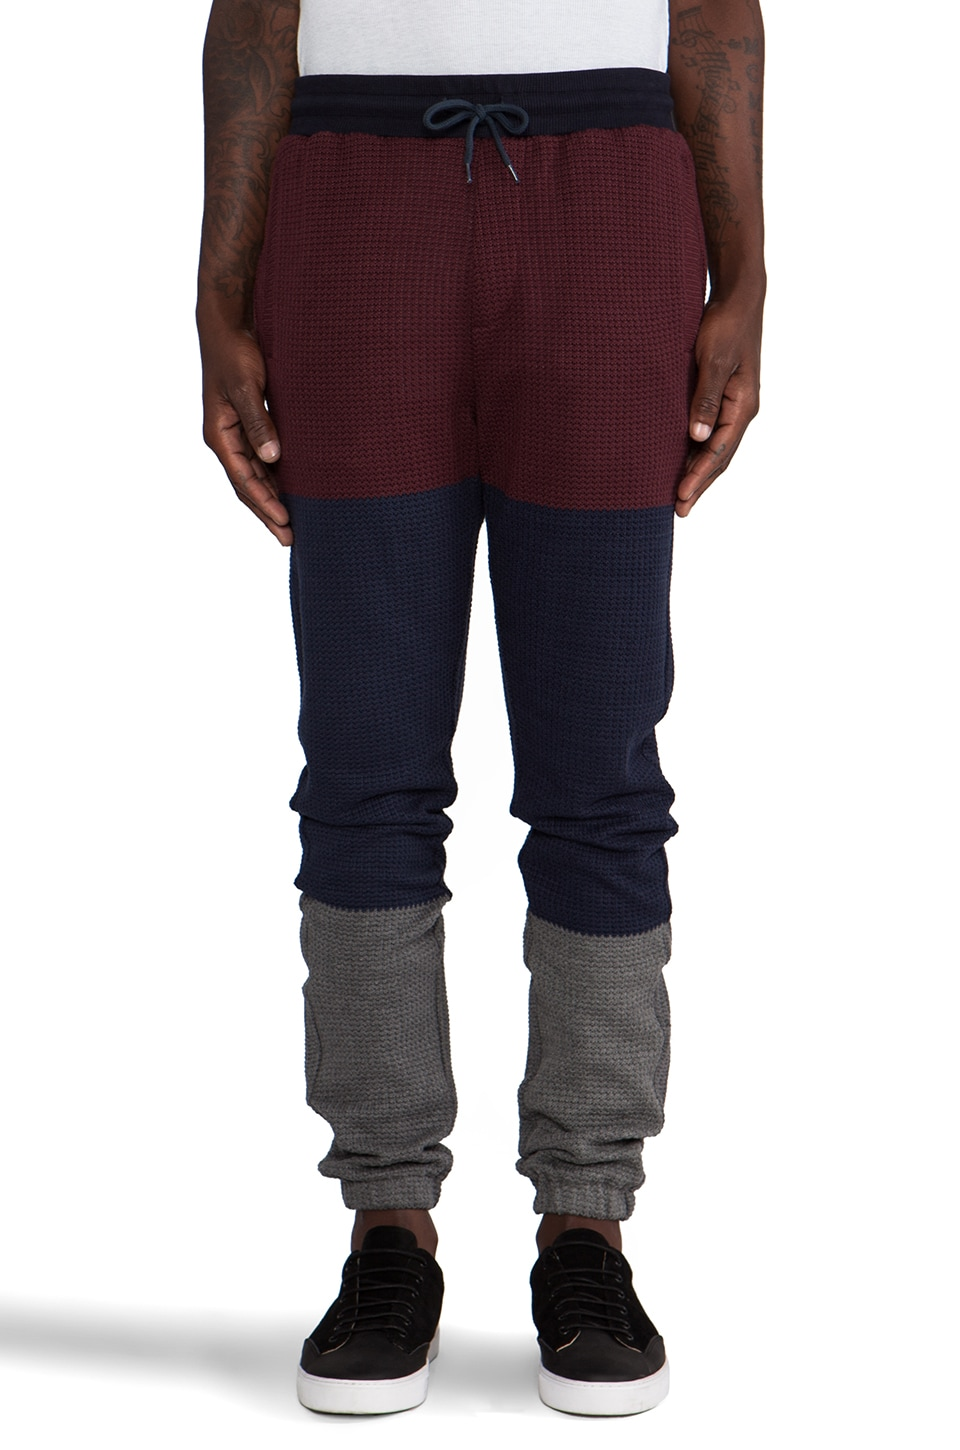 Shades of Grey by Micah Cohen Waffle Knit Lounge Pant in Burgundy/Navy/Charcoal